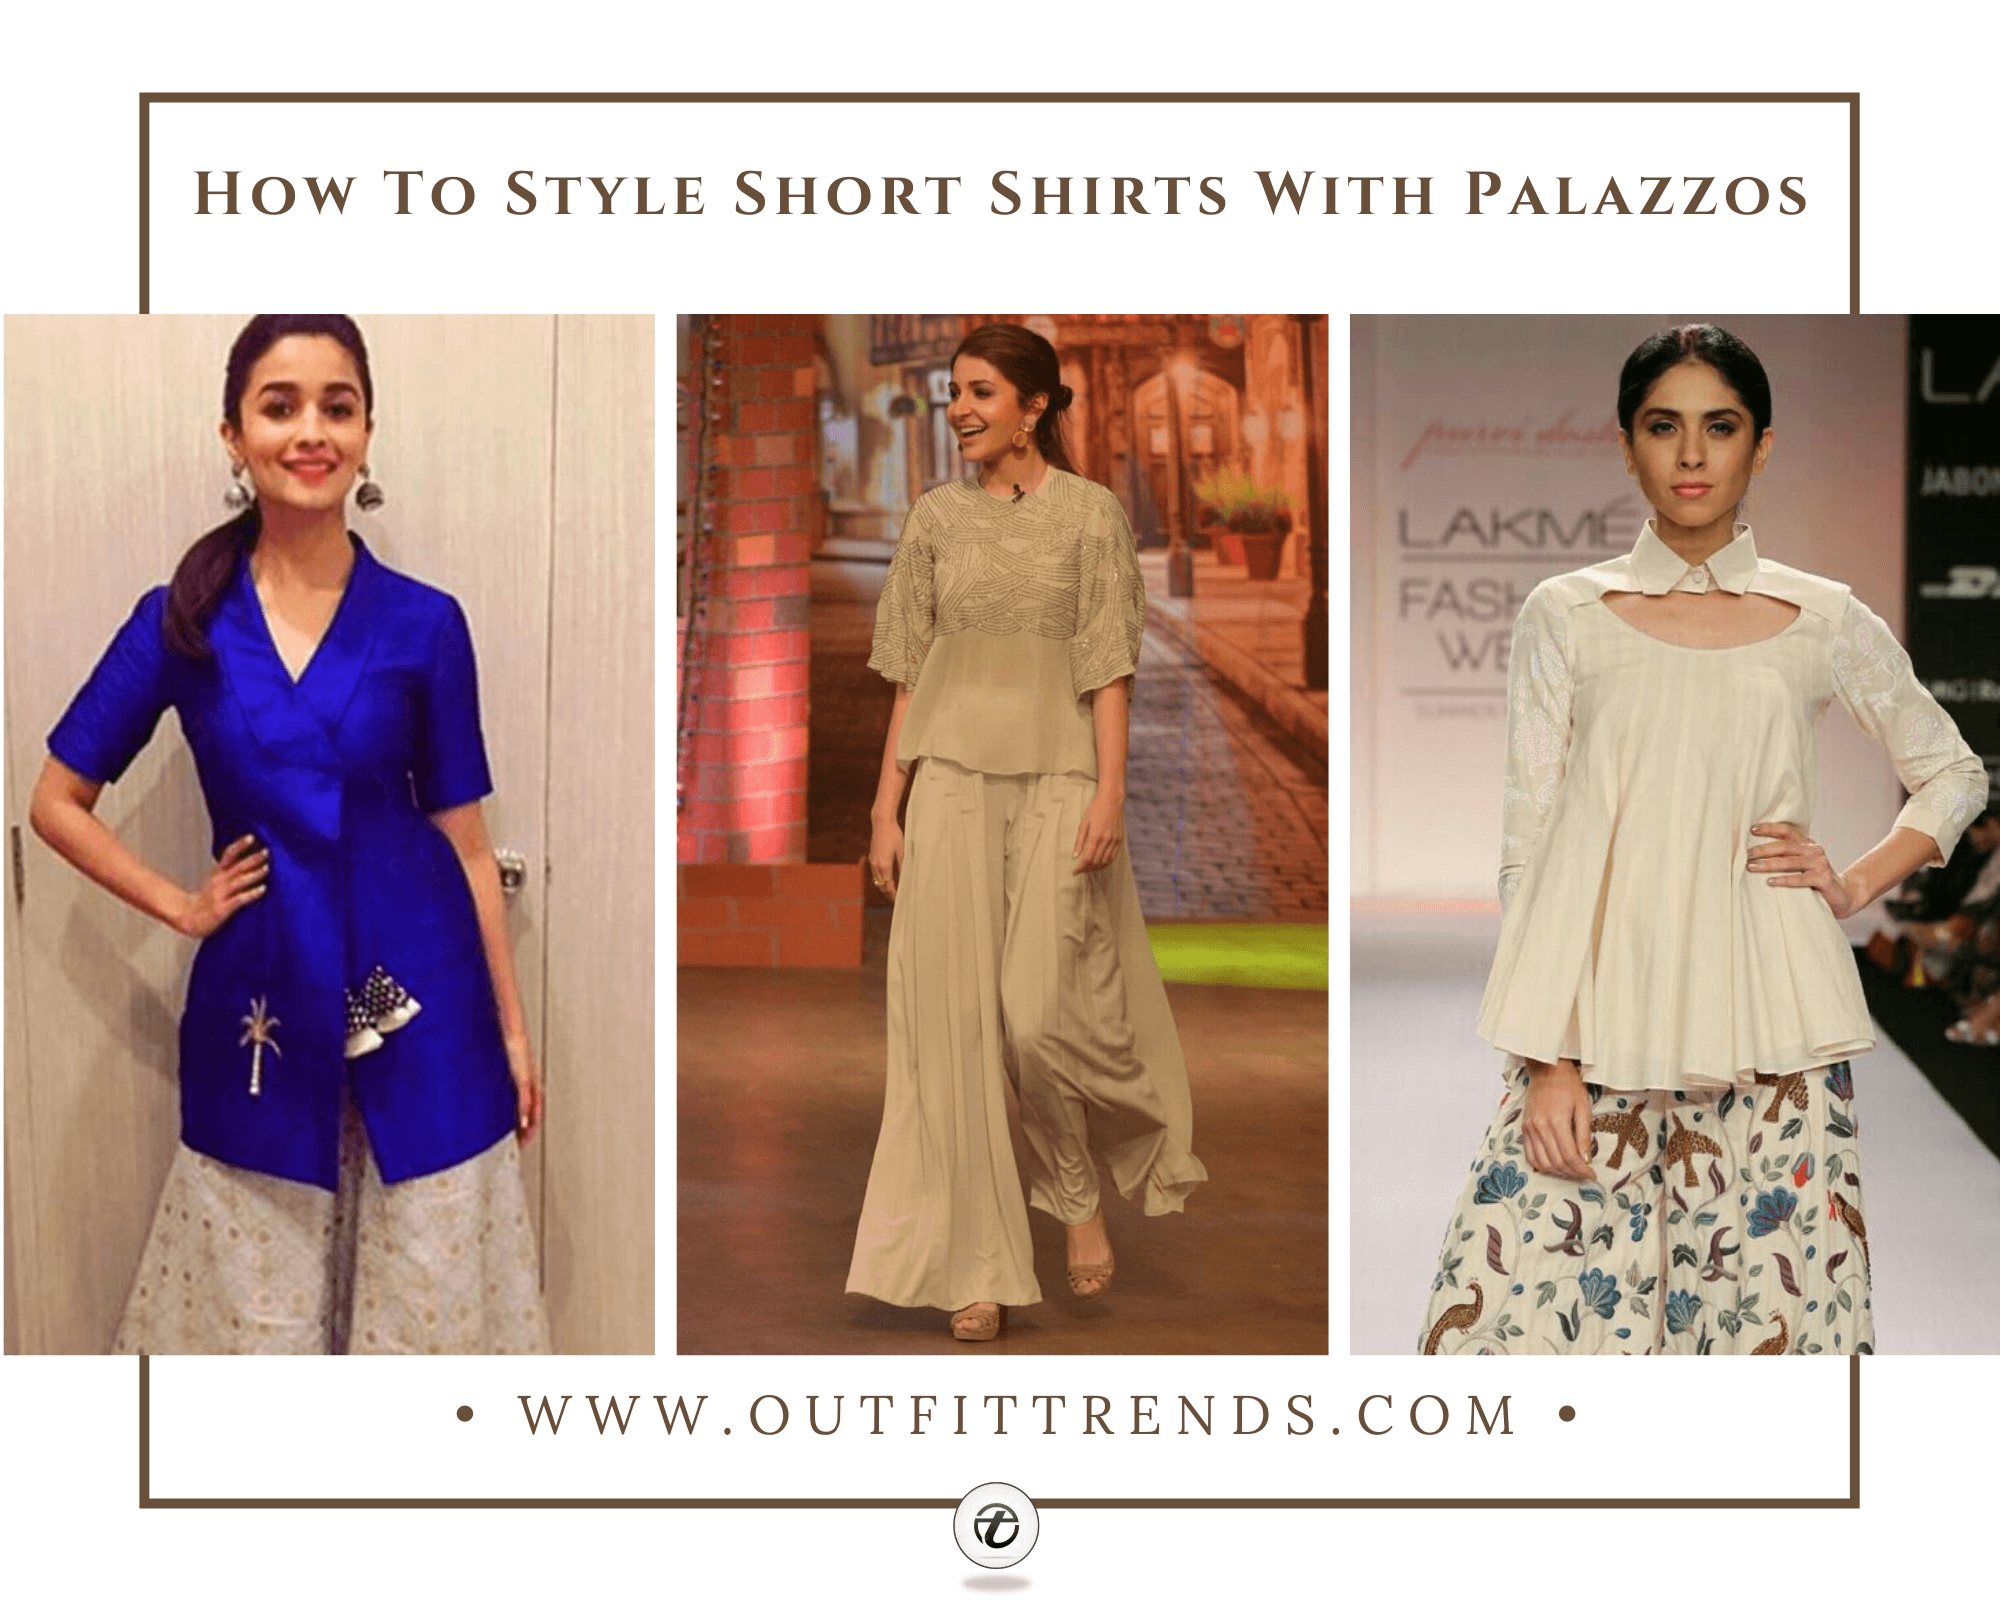 25 Different Ways To Wear Short Shirts With Palazzo Pants